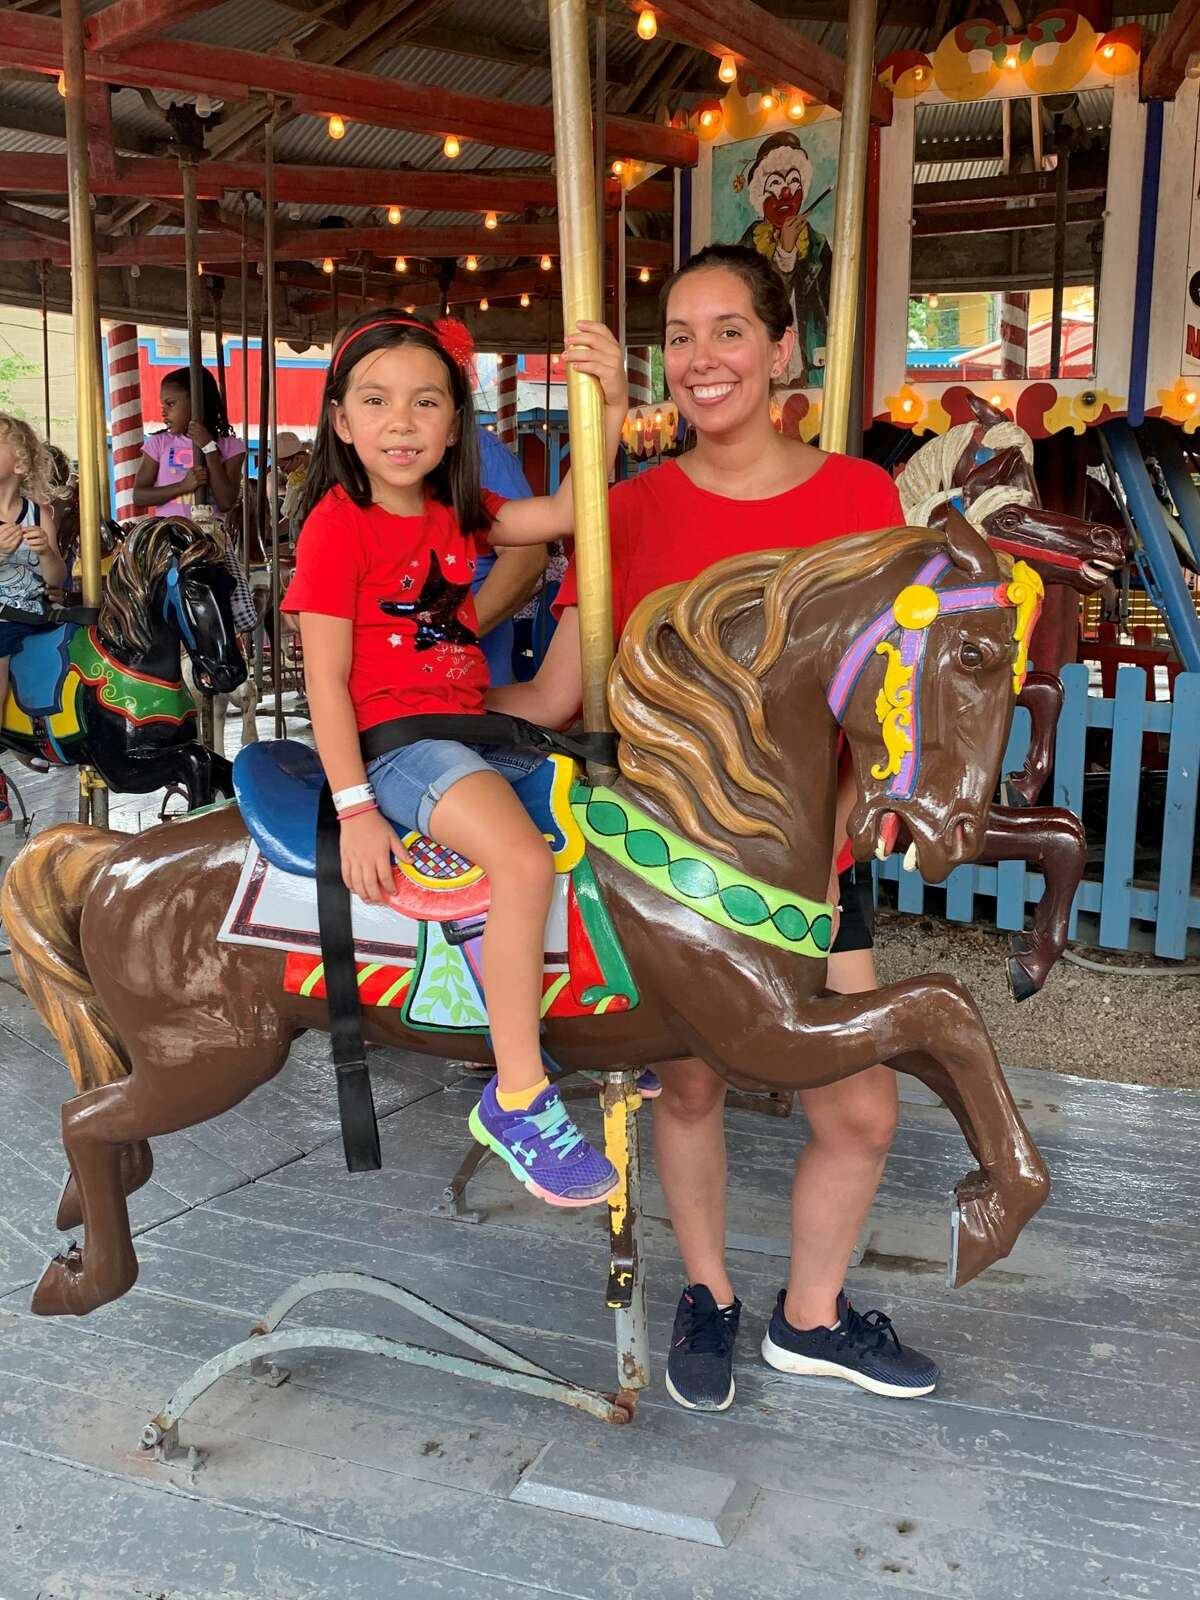 Meghan Heinz and Mia Valenzuela, 5, enjoy the carousel at Kiddie Park on its last day at the Broadway location on Thursday.